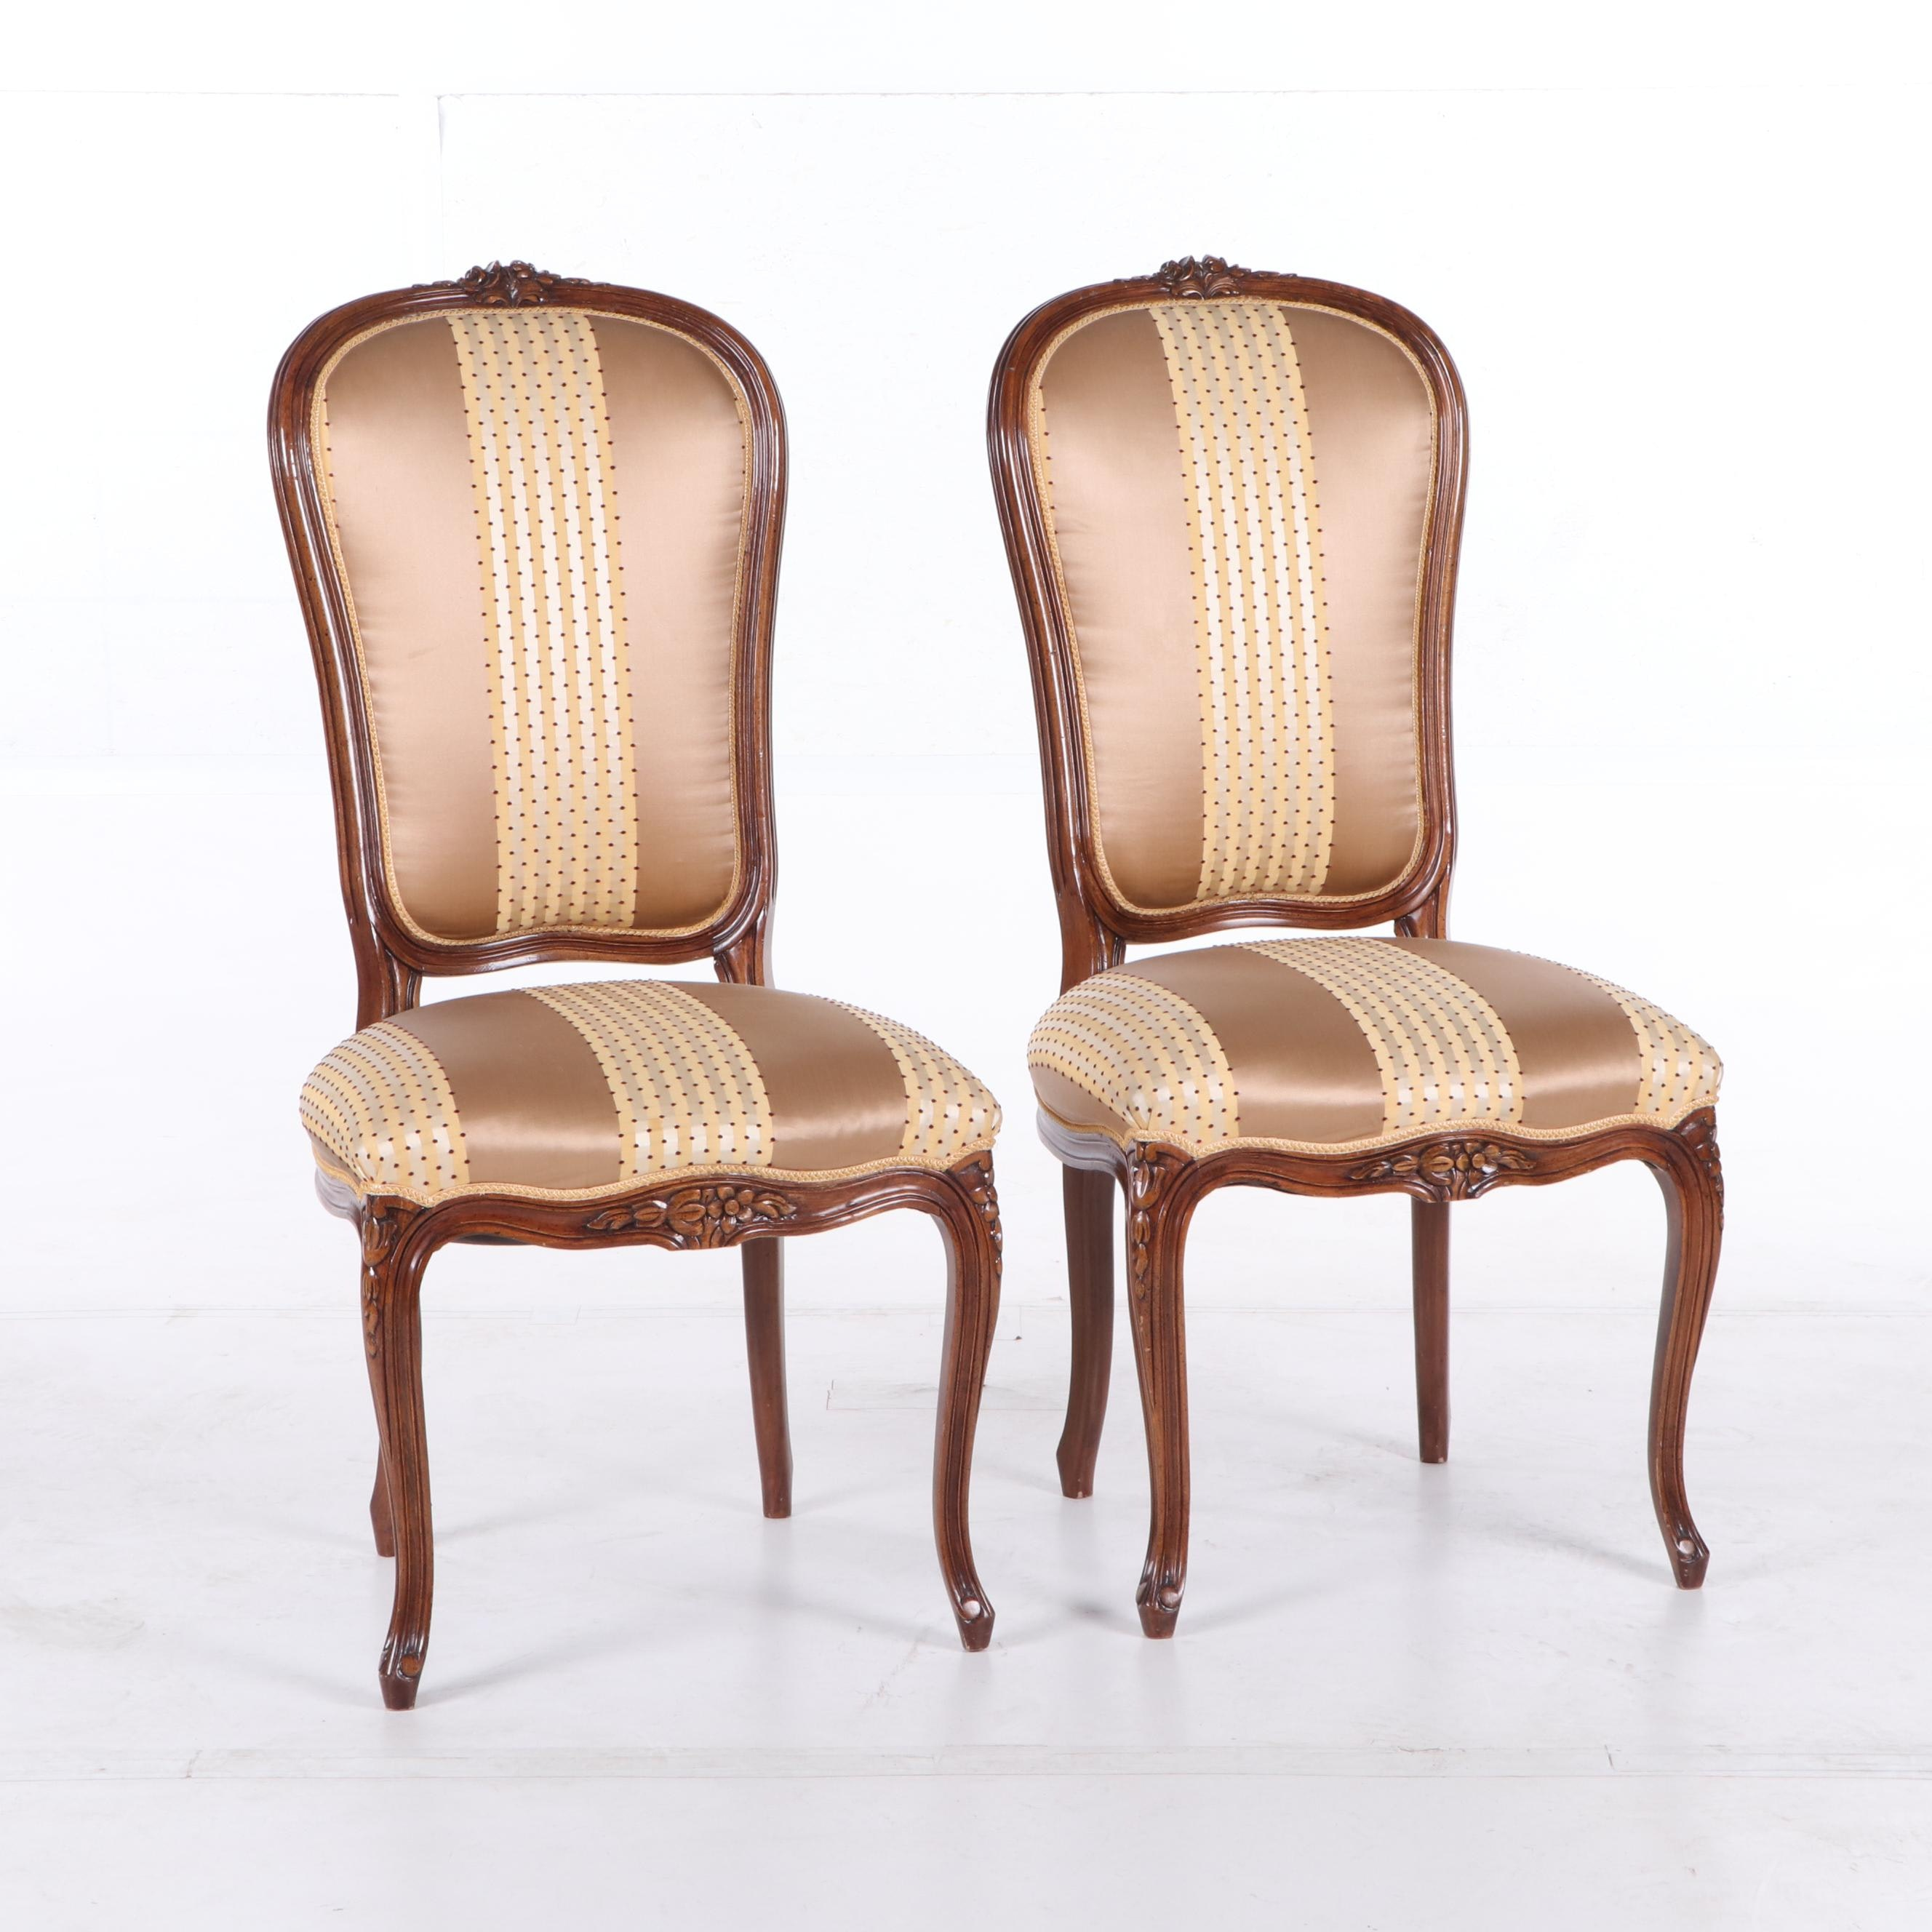 Louis XV Style Upholstered Side Chairs, 21st Century